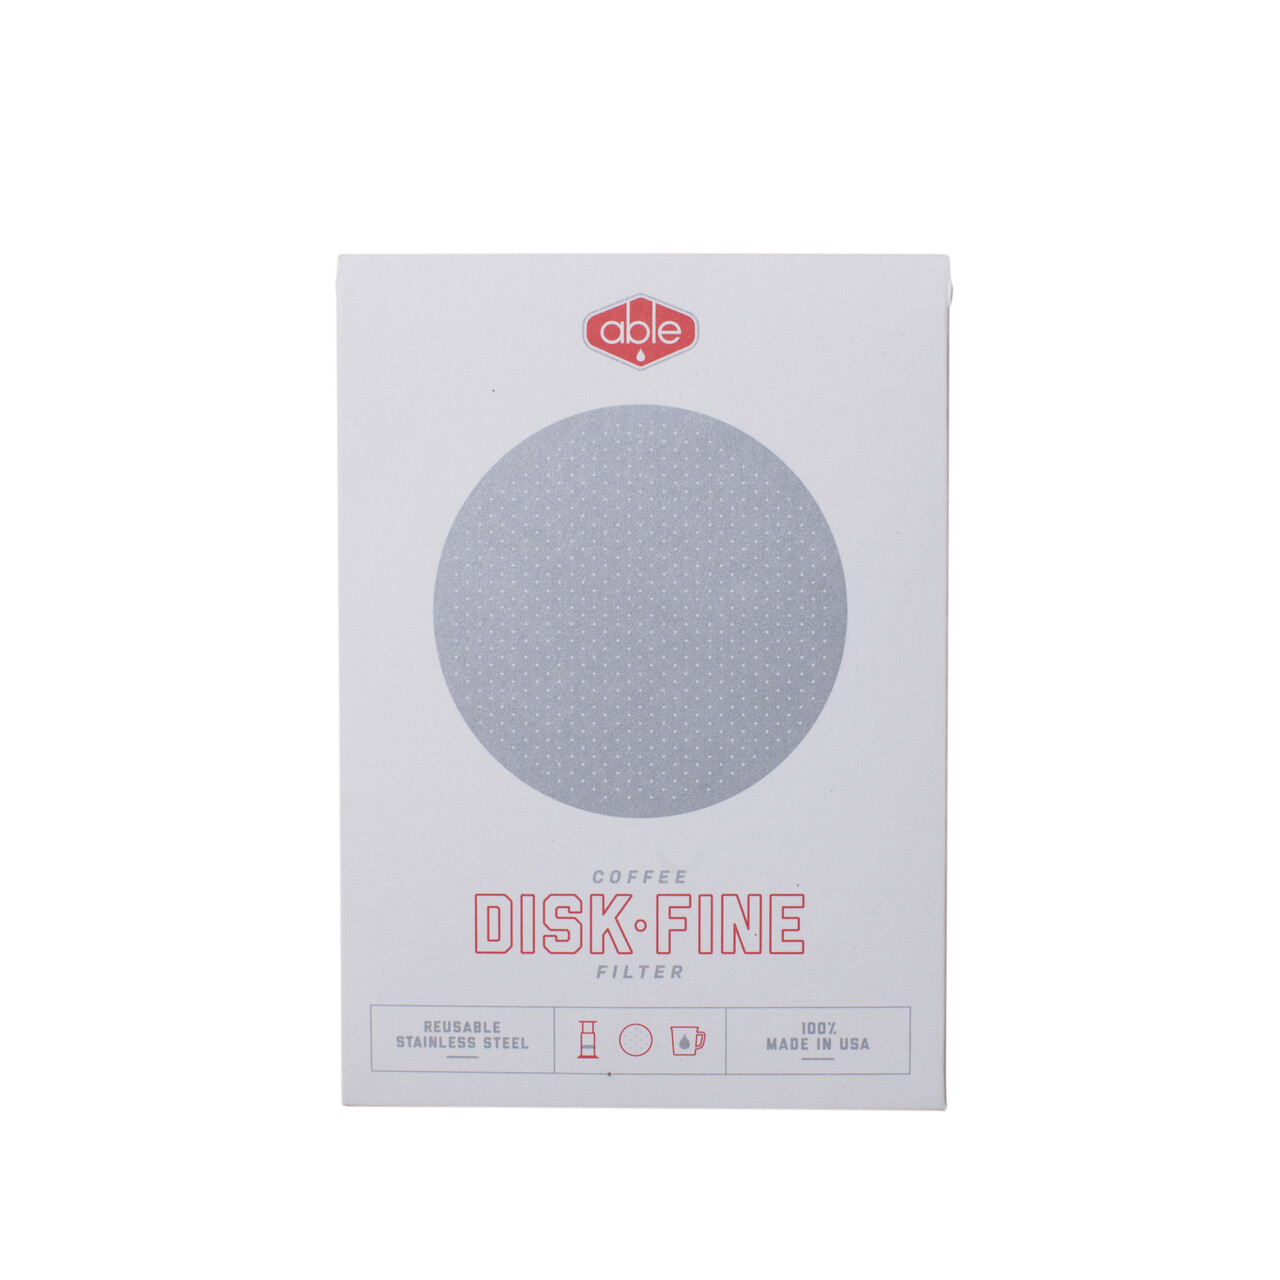 Able DISK-Fine Filter for AeroPress